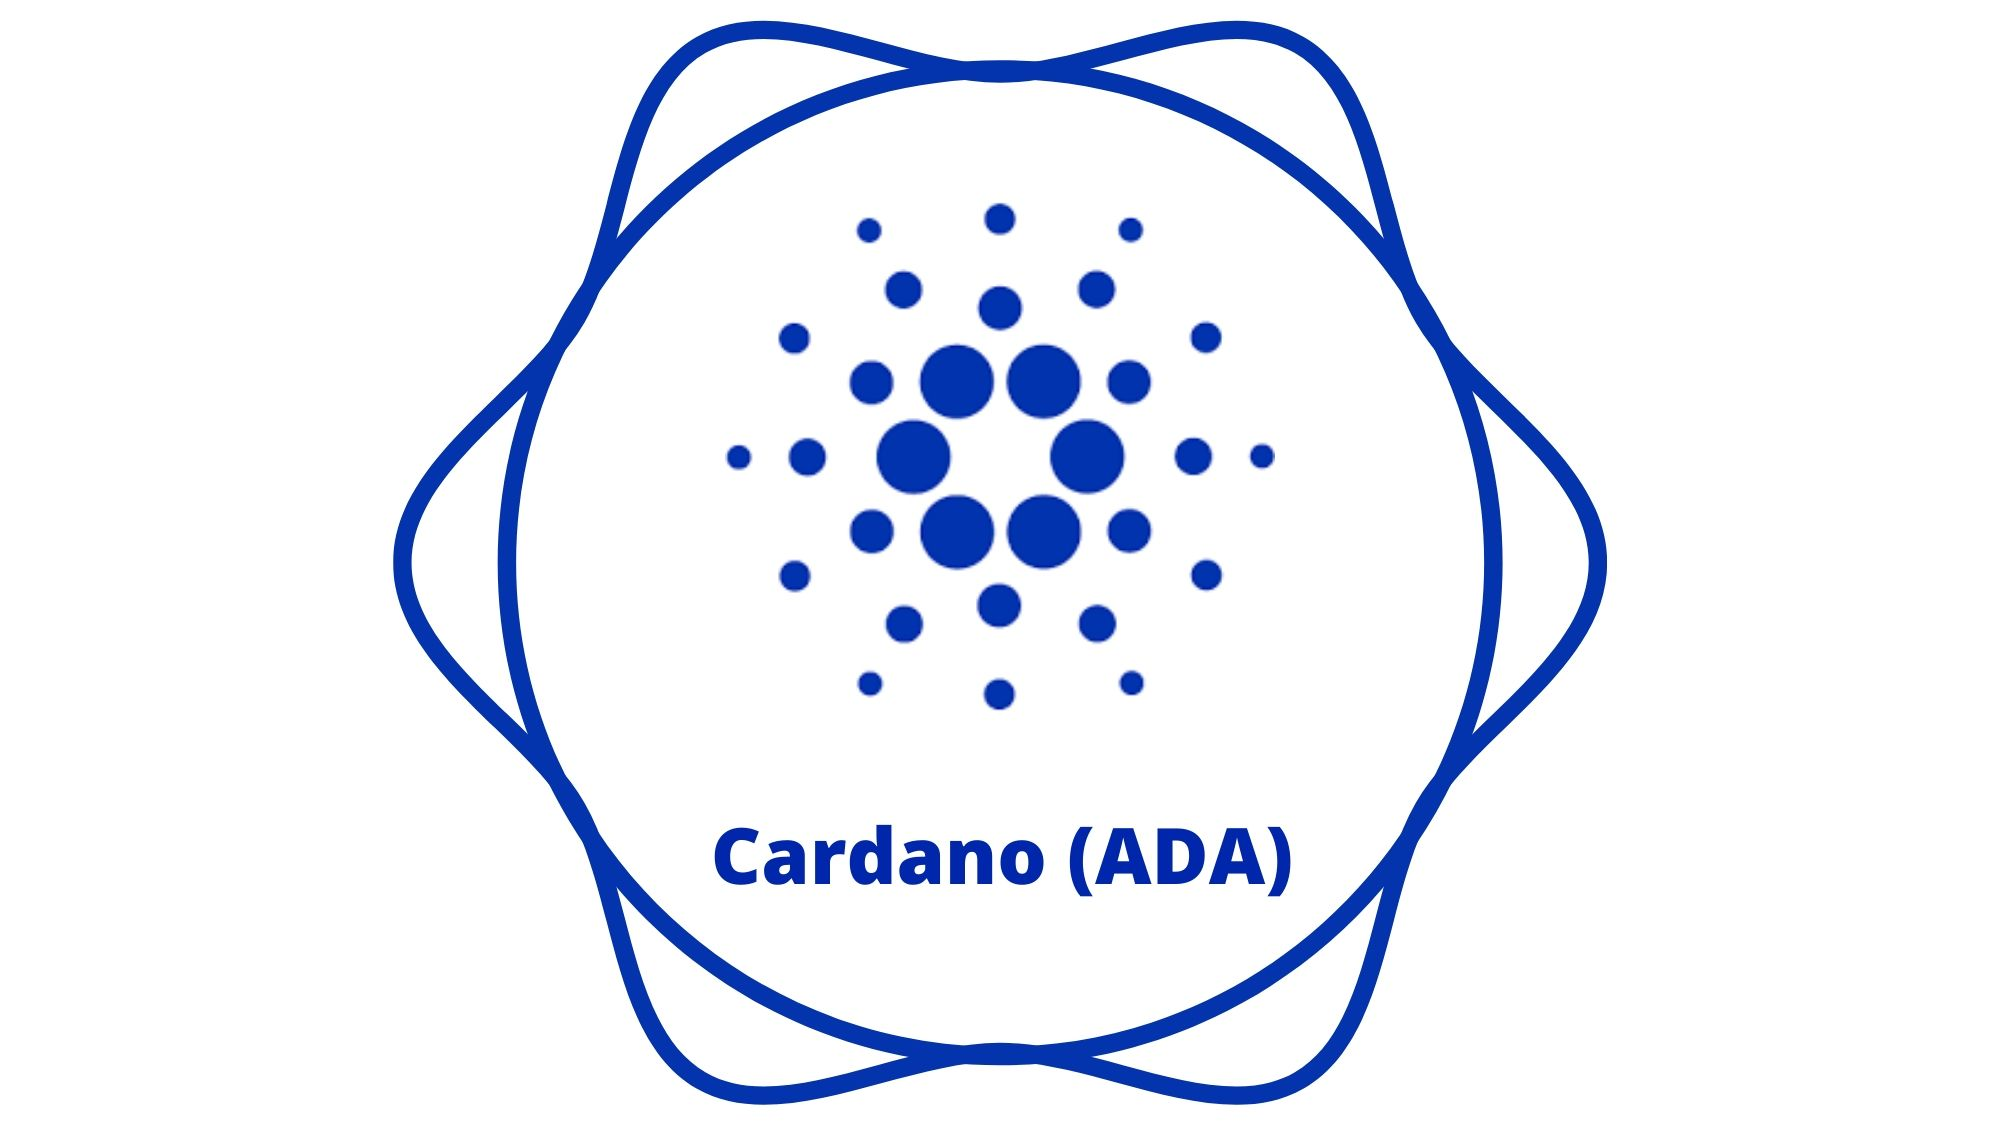 We'll Have Ethiopia Development News Soon – Cardano's Charles Hoskinson